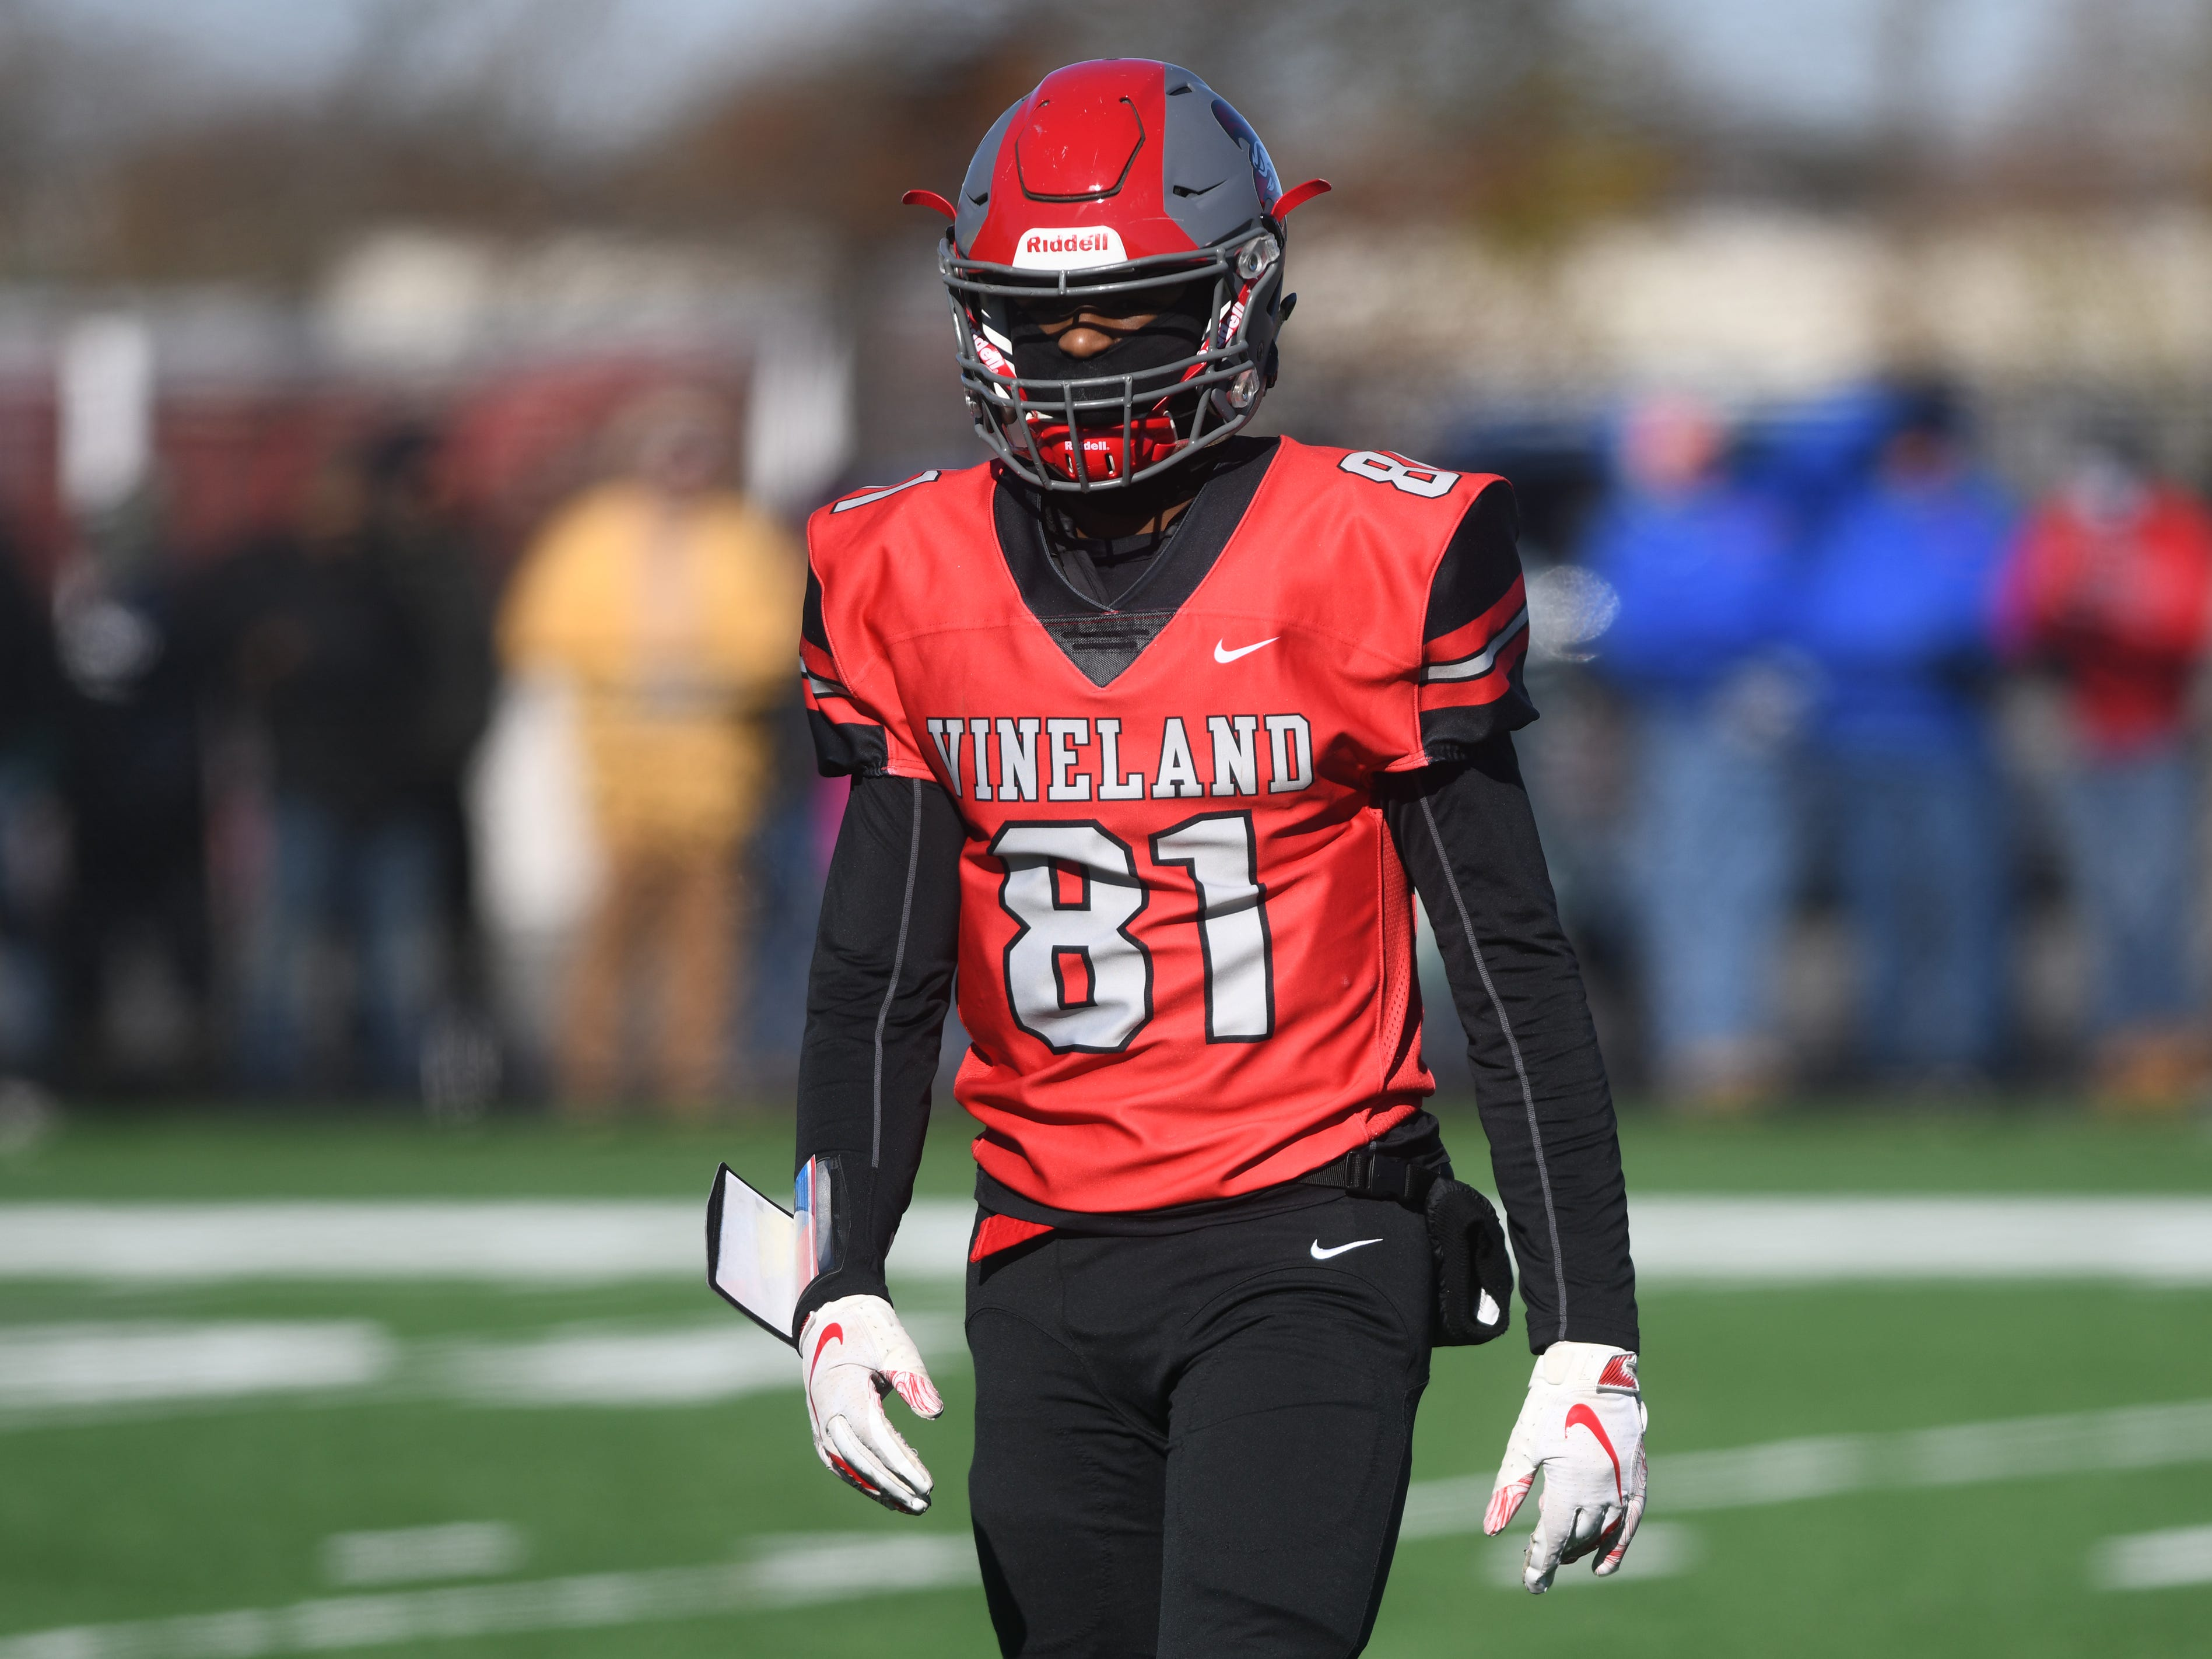 Vineland's Conrad Jackson III checks the sideline during a game against Millville at Gittone Stadium on Thanksgiving Day.